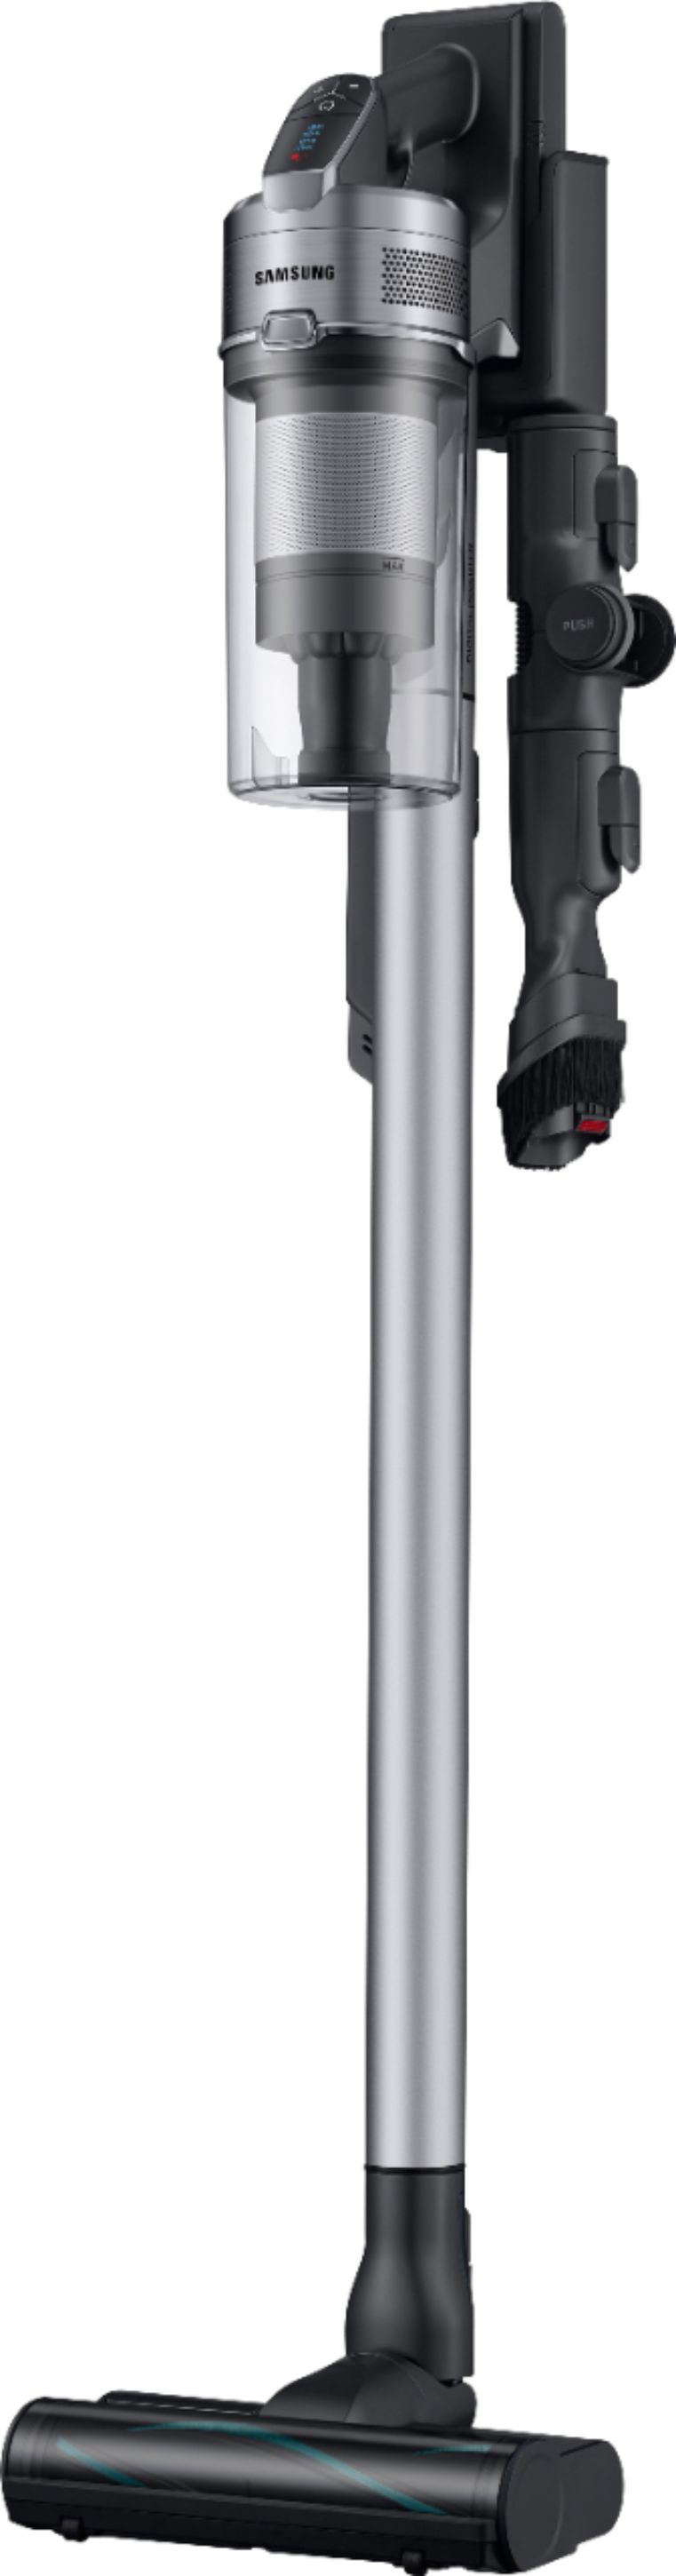 Samsung - Jet™ 75 Complete Cordless Stick Vacuum - Titan ChroMetal with Teal Silver filter